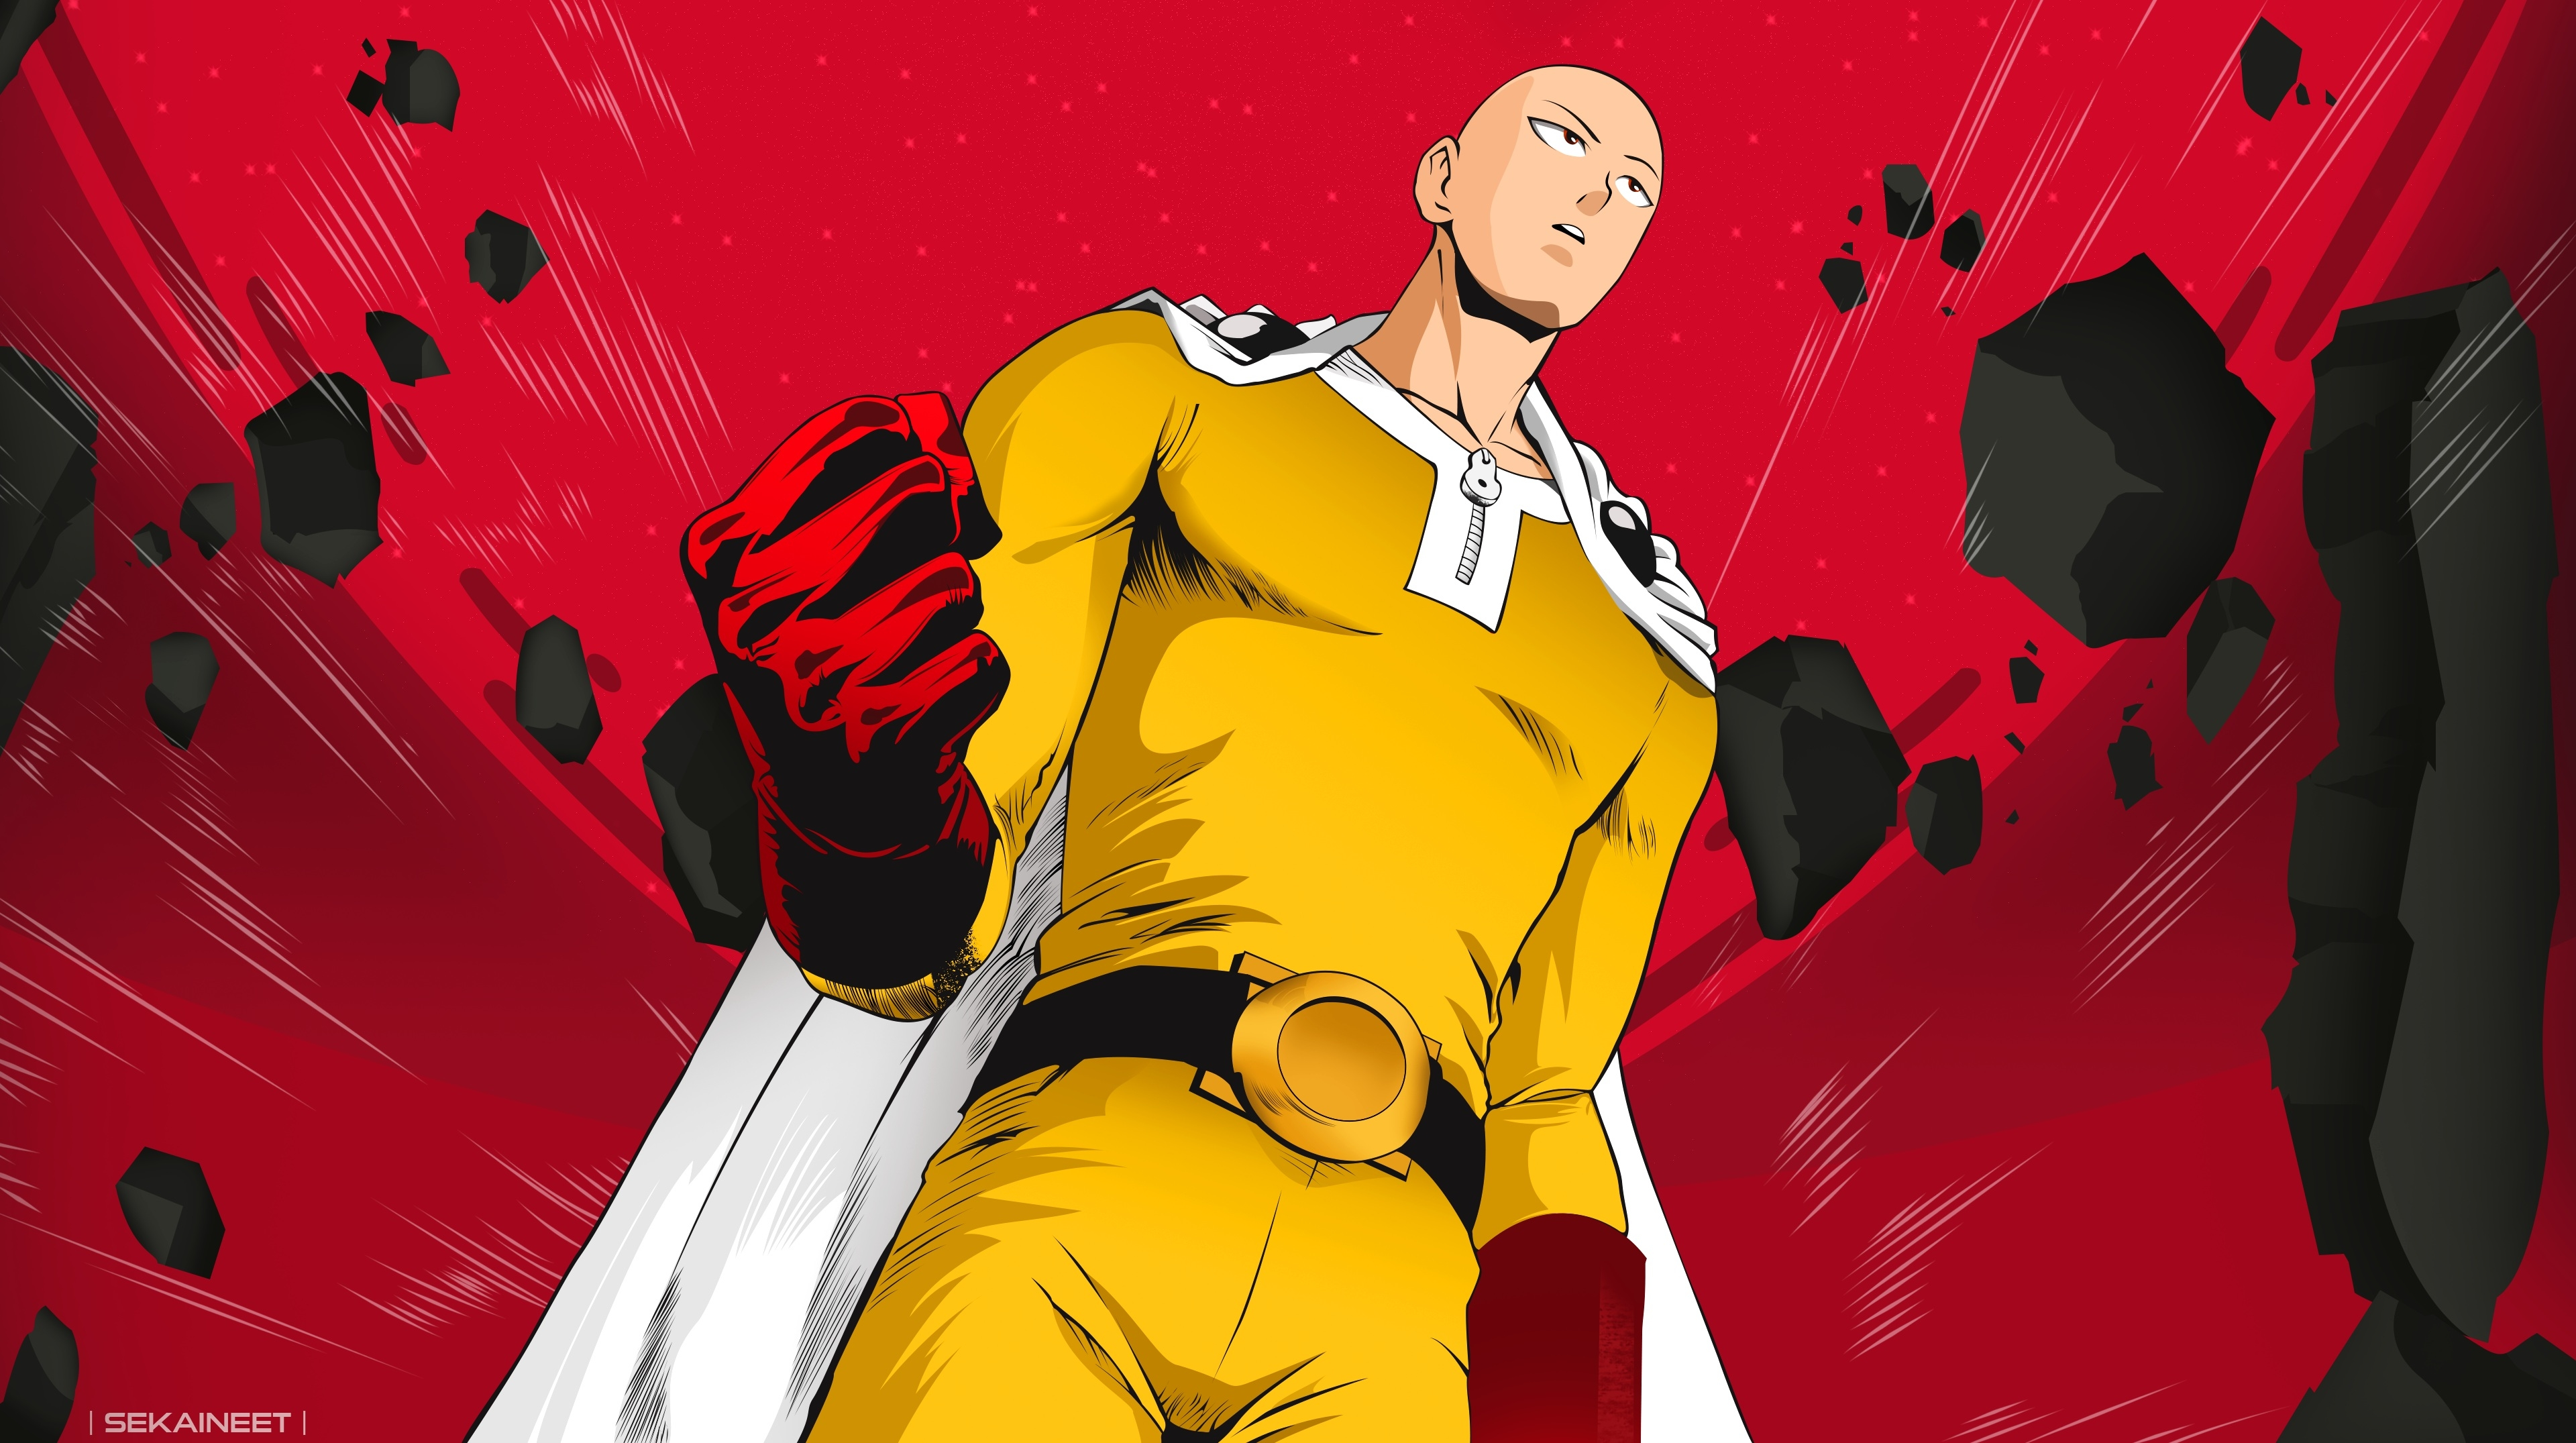 Saitama In One Punch Man Wallpaper Hd Anime 4k Wallpapers Images